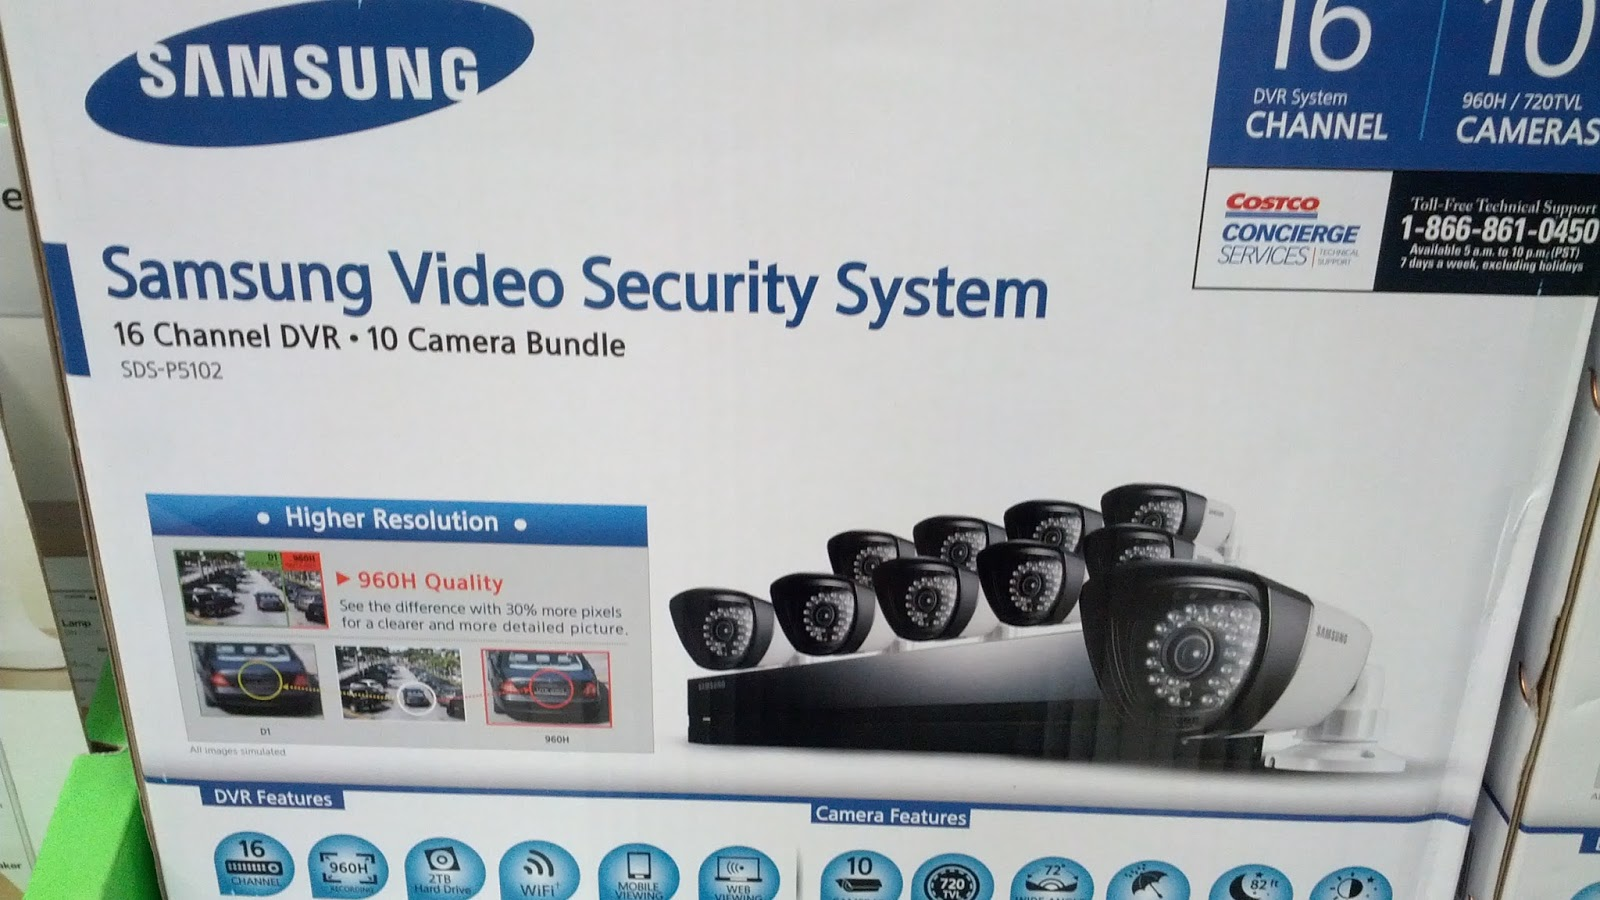 Camera Surveillance Exterieur Costco Security Camera Systems Costco Wallpapers Gallery